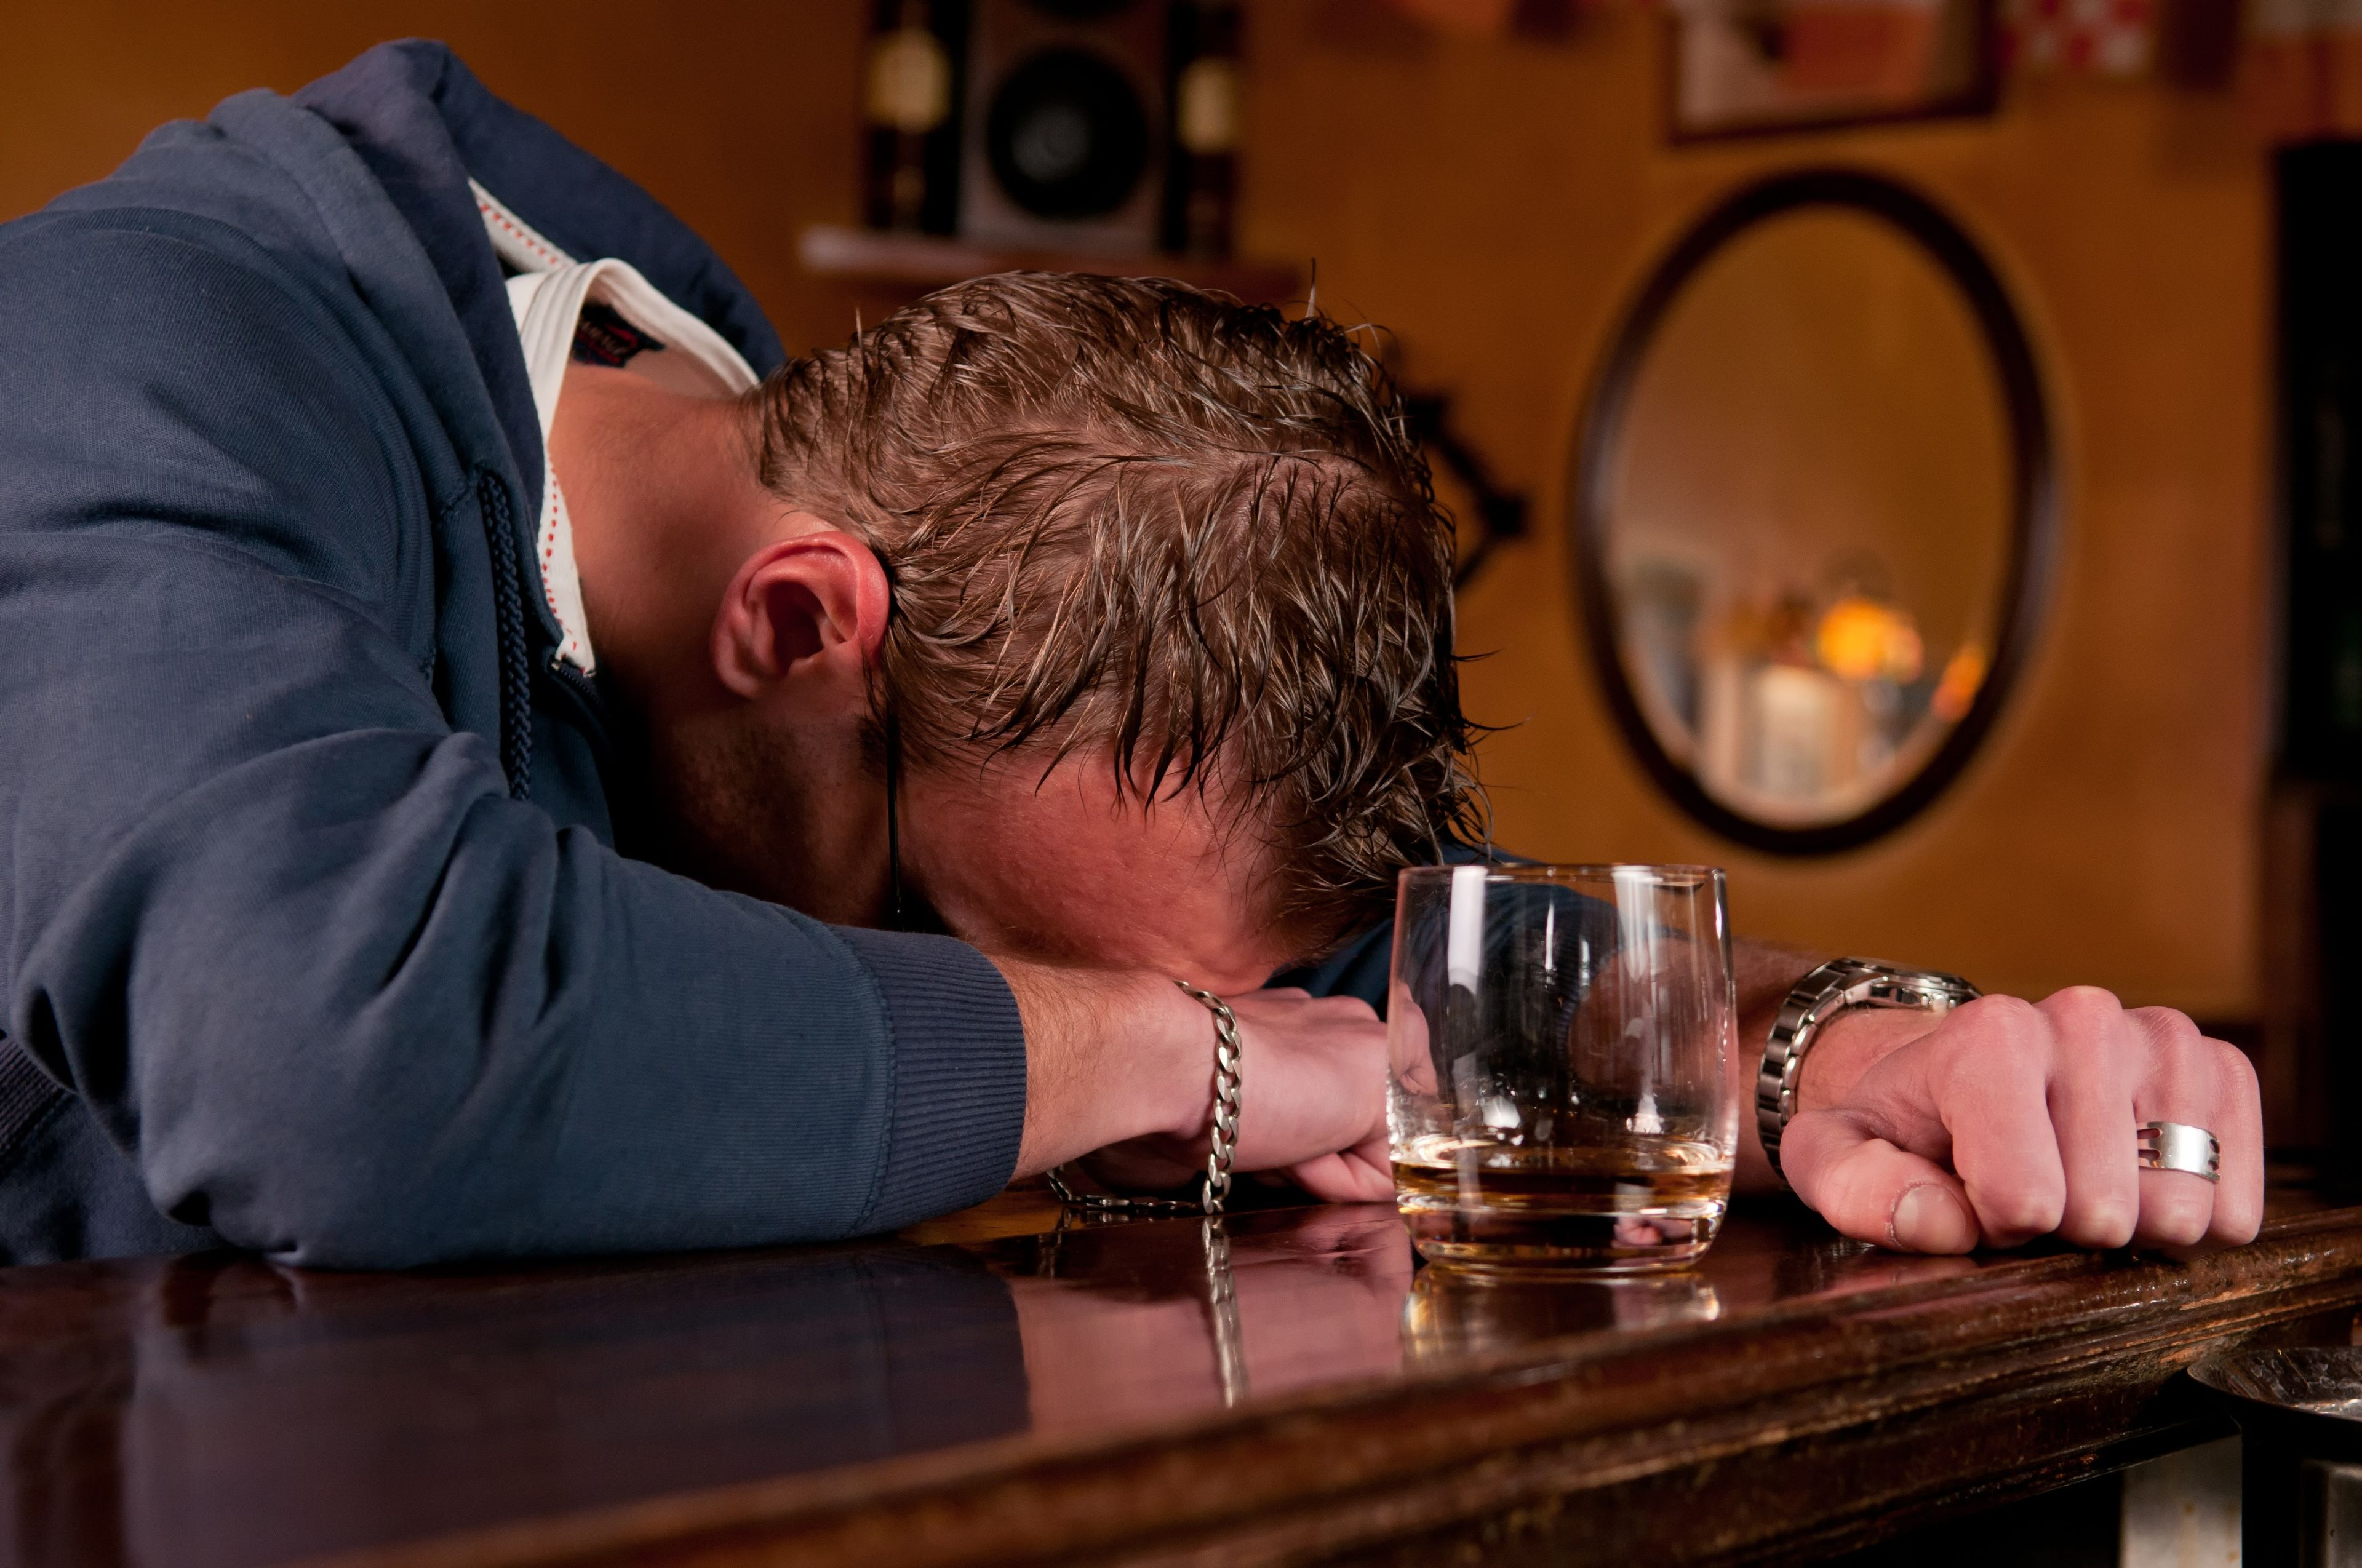 In Health Of Drinking Ask Early Anxiety Stage Life Increases Adulthood News Binge -